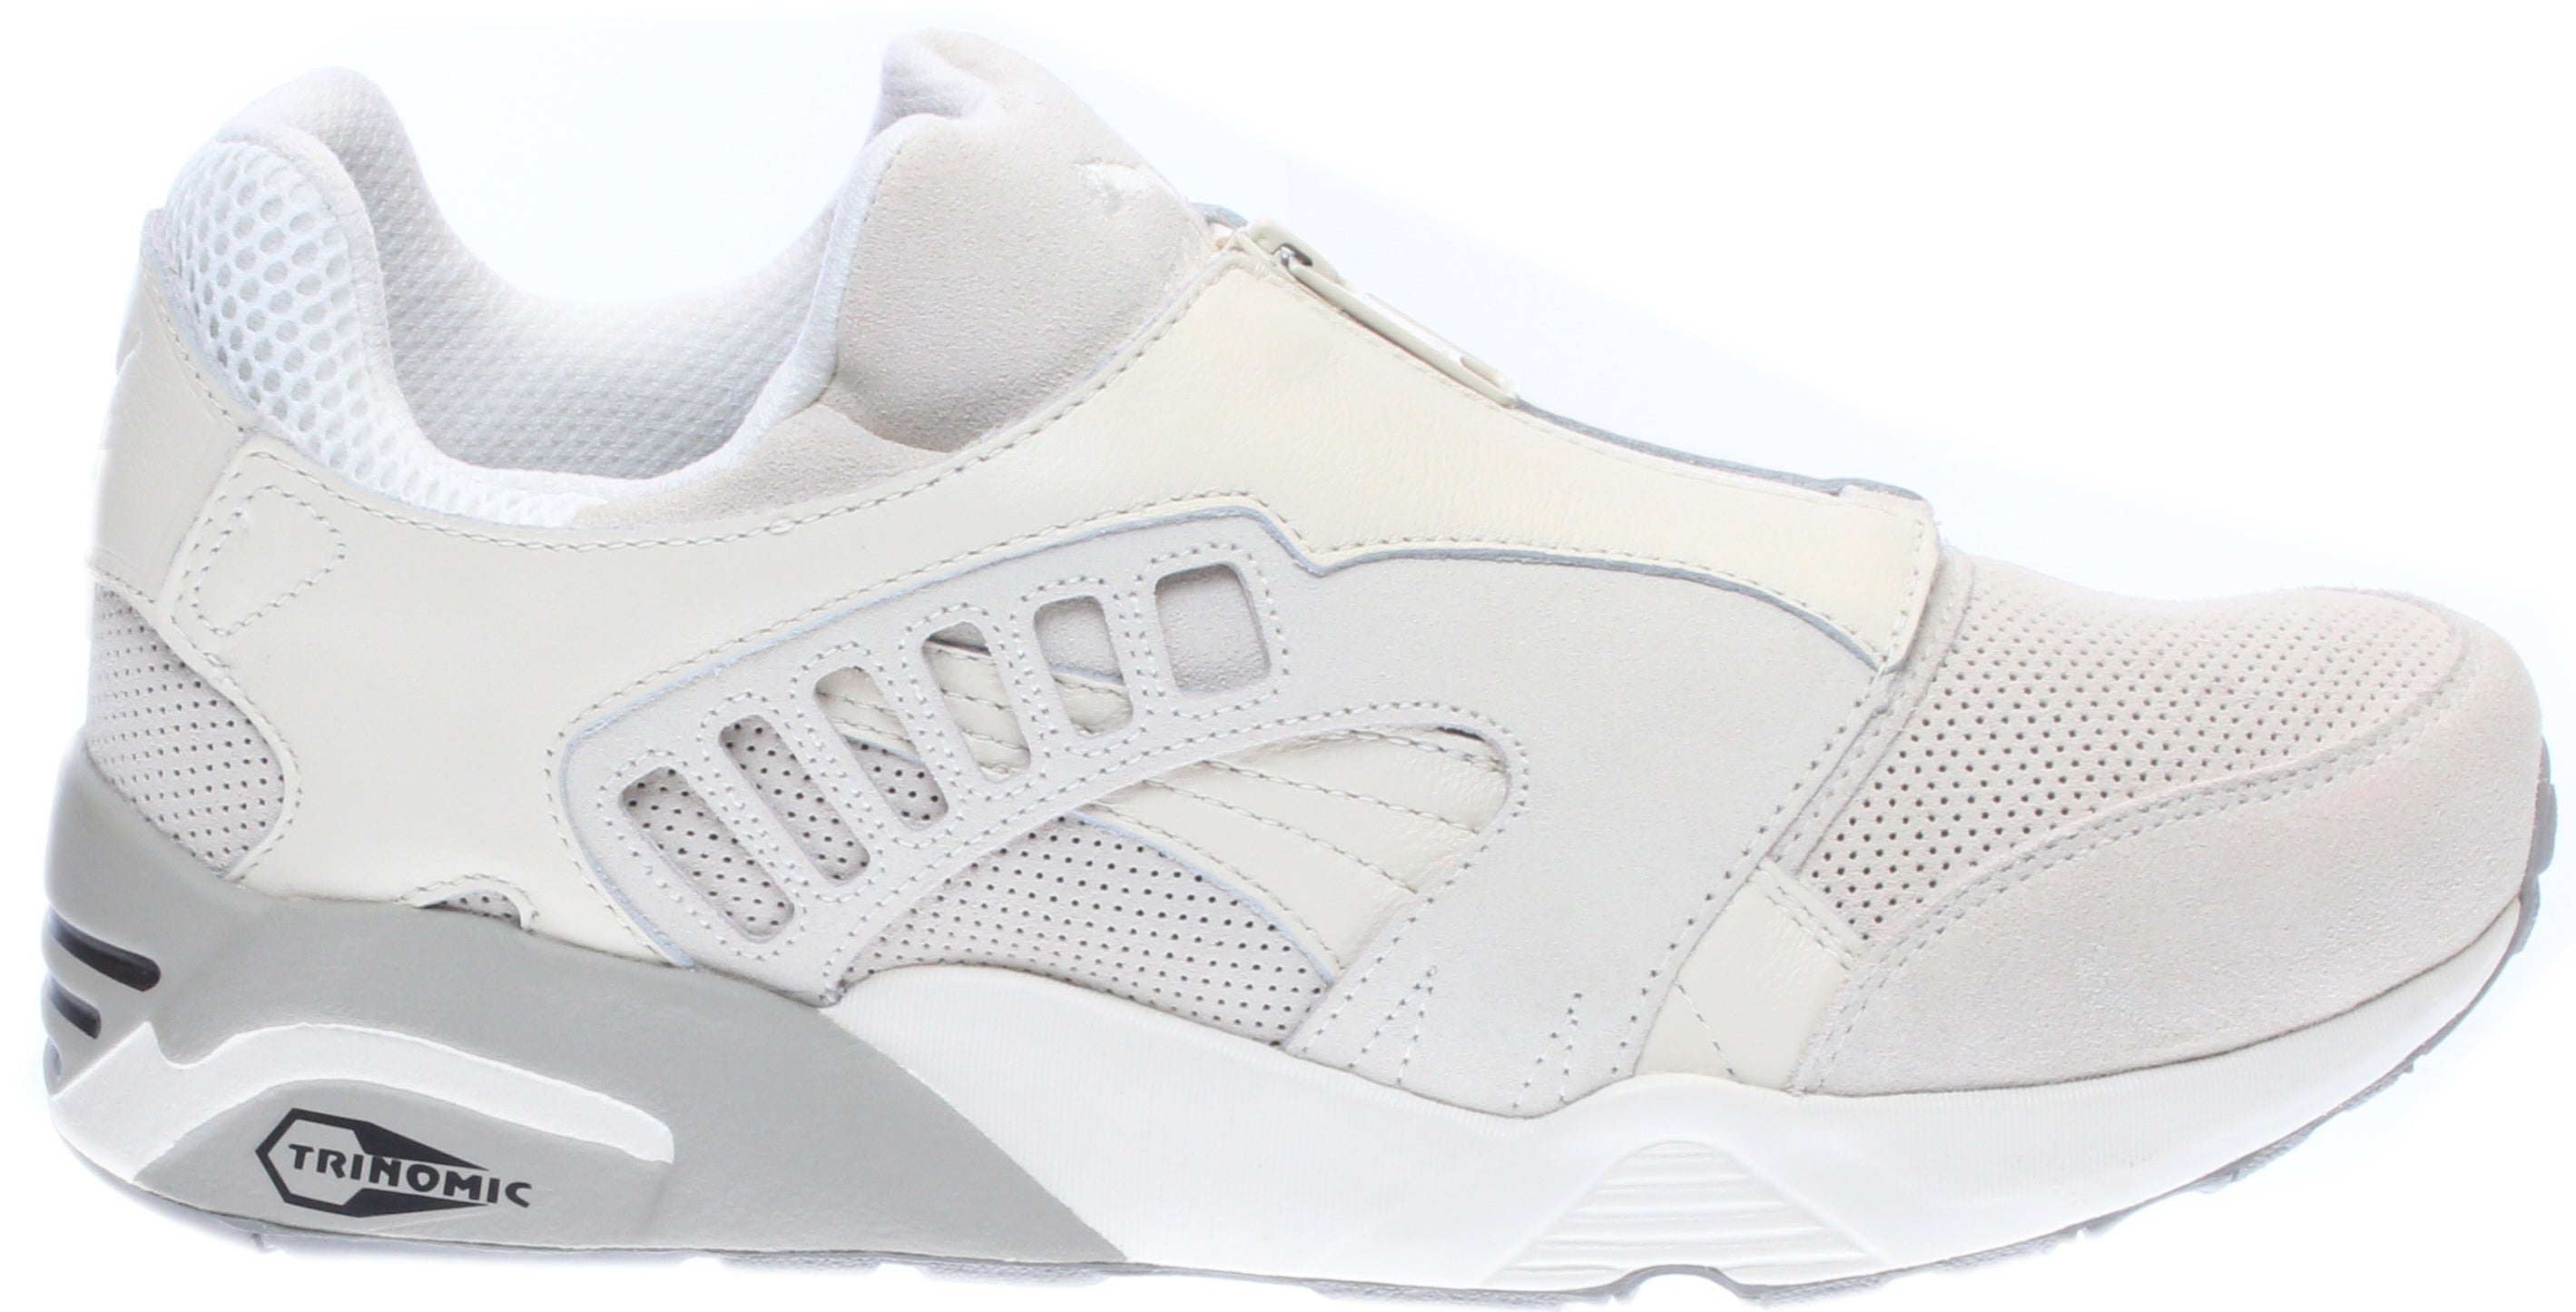 Puma Trinomic Zip White - Mens  - Size 11.5